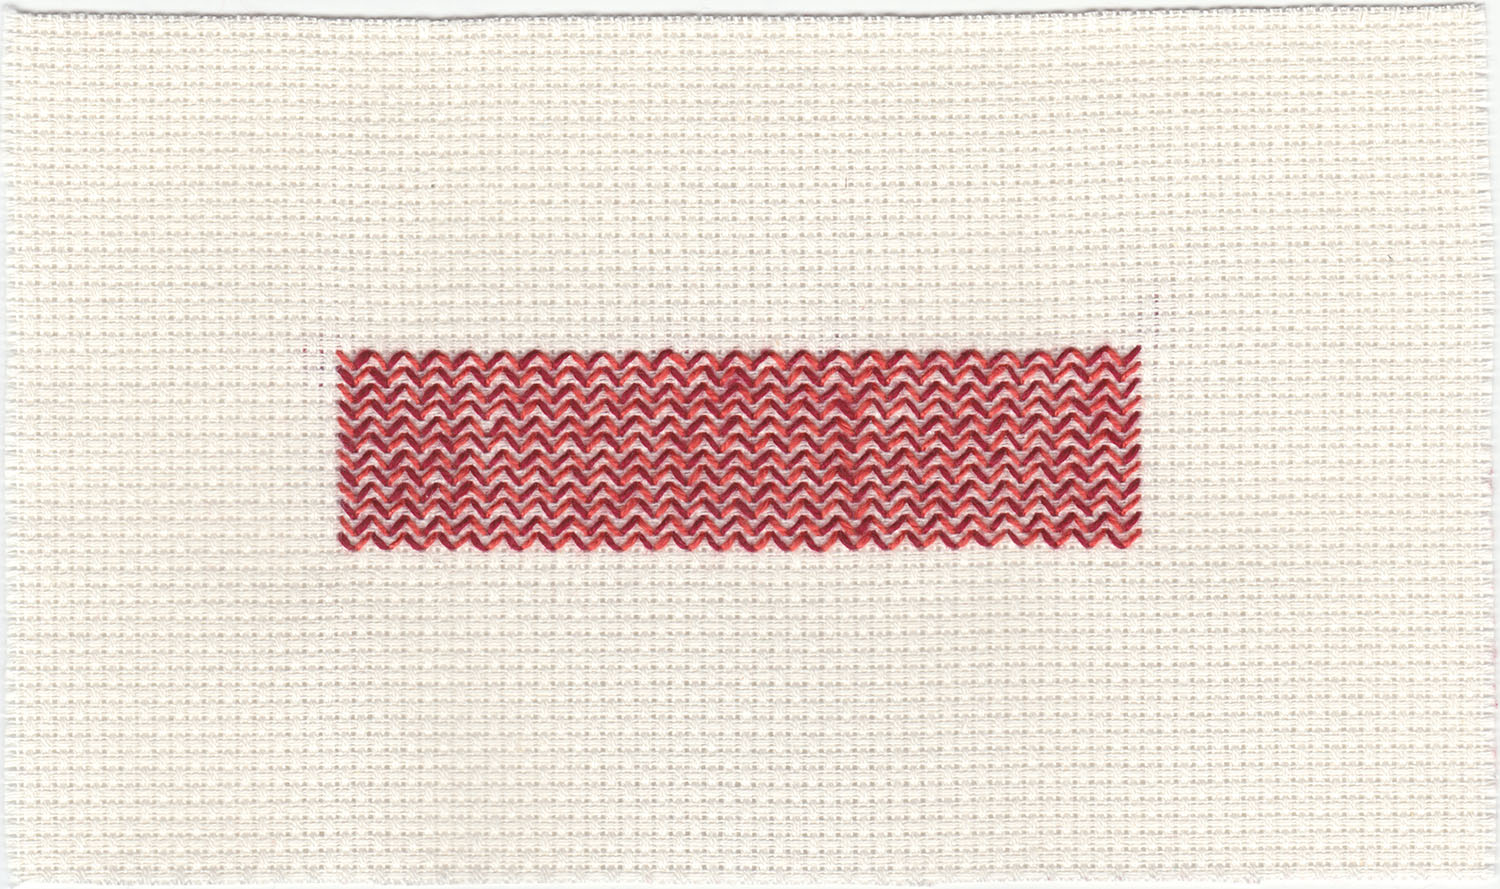 Colour Study in 576 Diagonal Stitches_3A_web.jpg